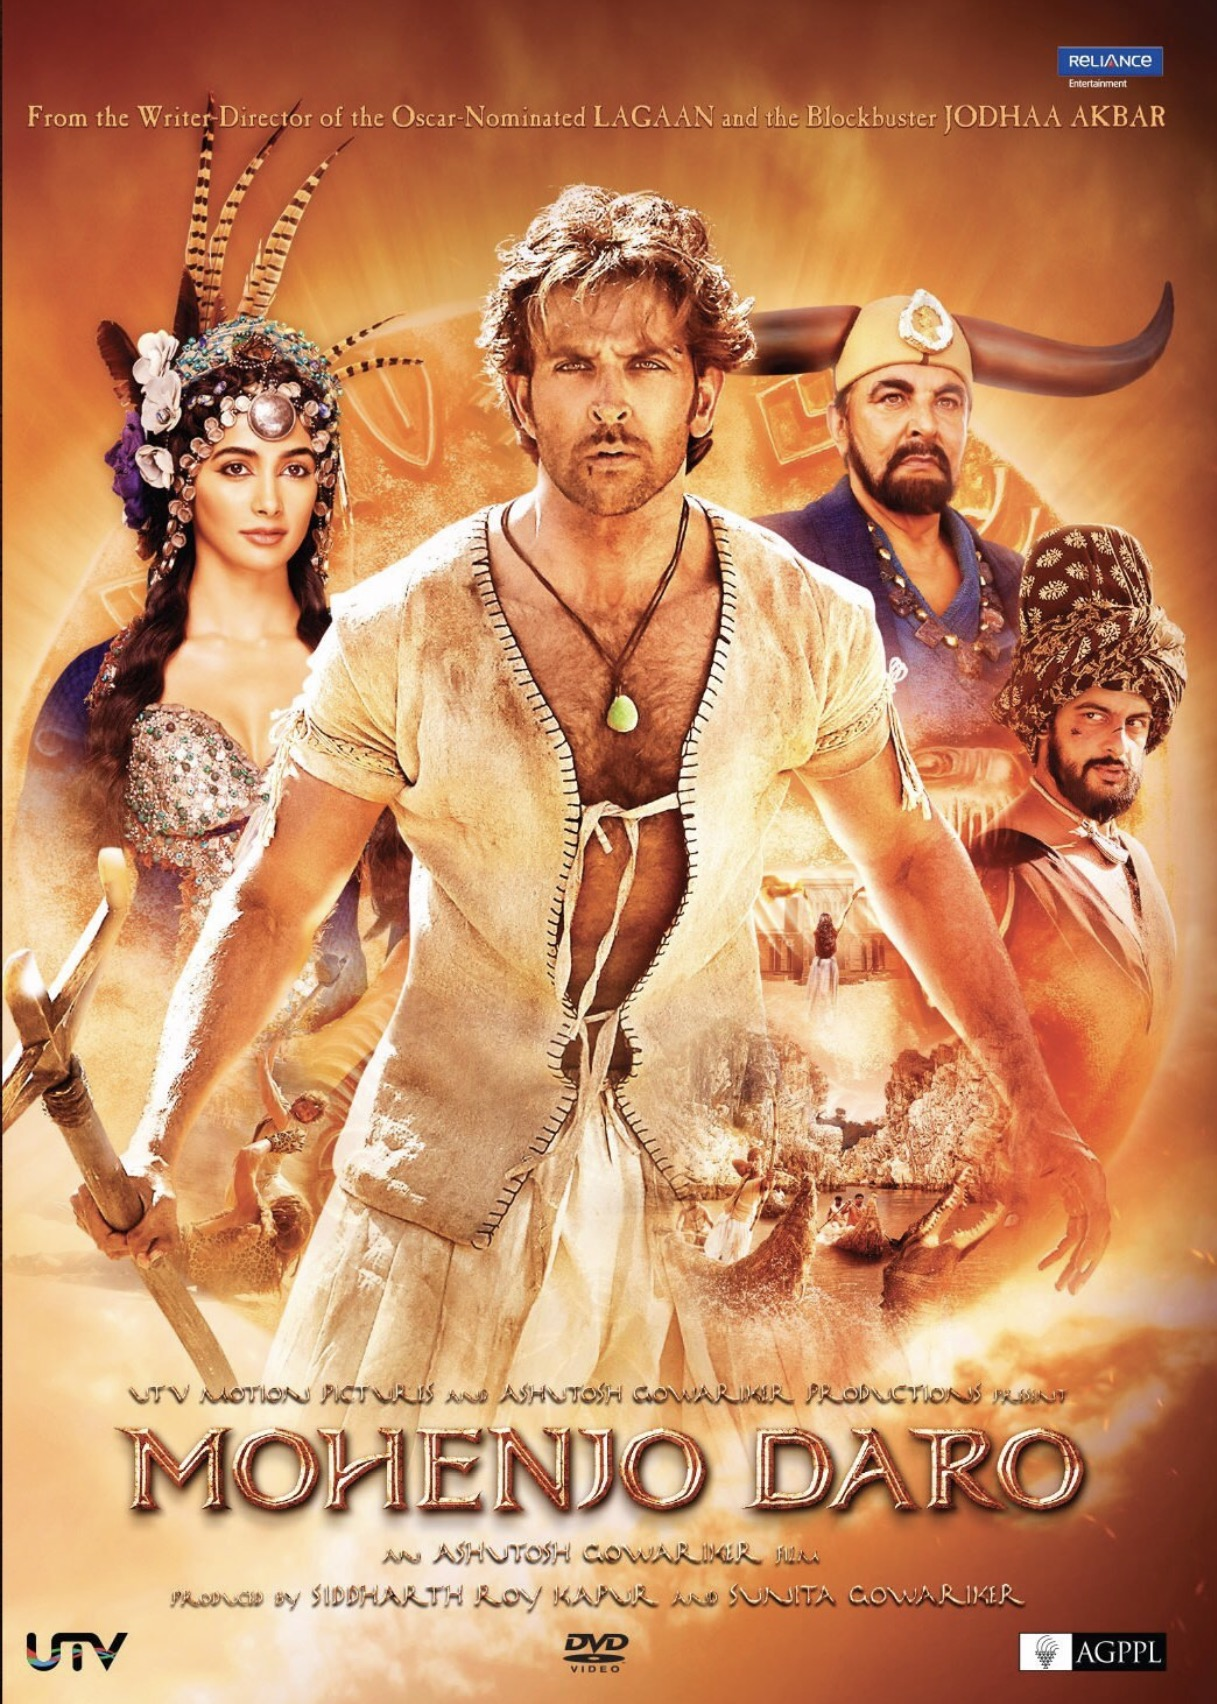 Mohenjo Daro 2016 Hindi Movie 720p HDRip x264 AAC 900MB Download